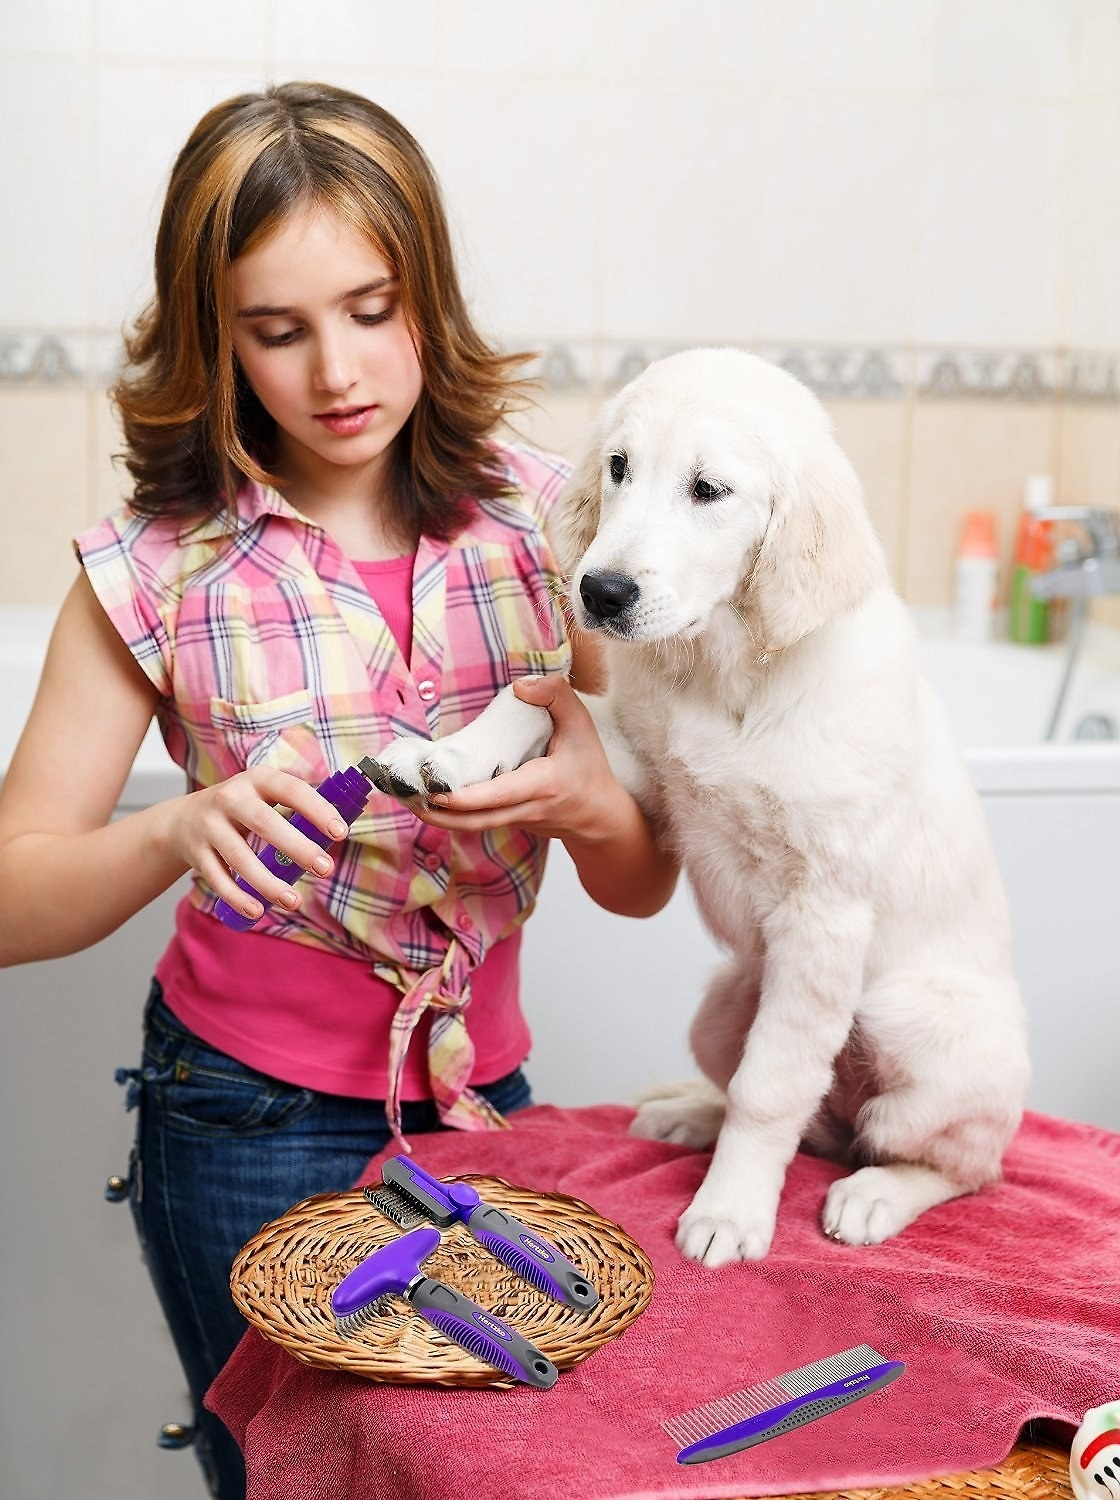 Model using the grinder on a puppy's nails